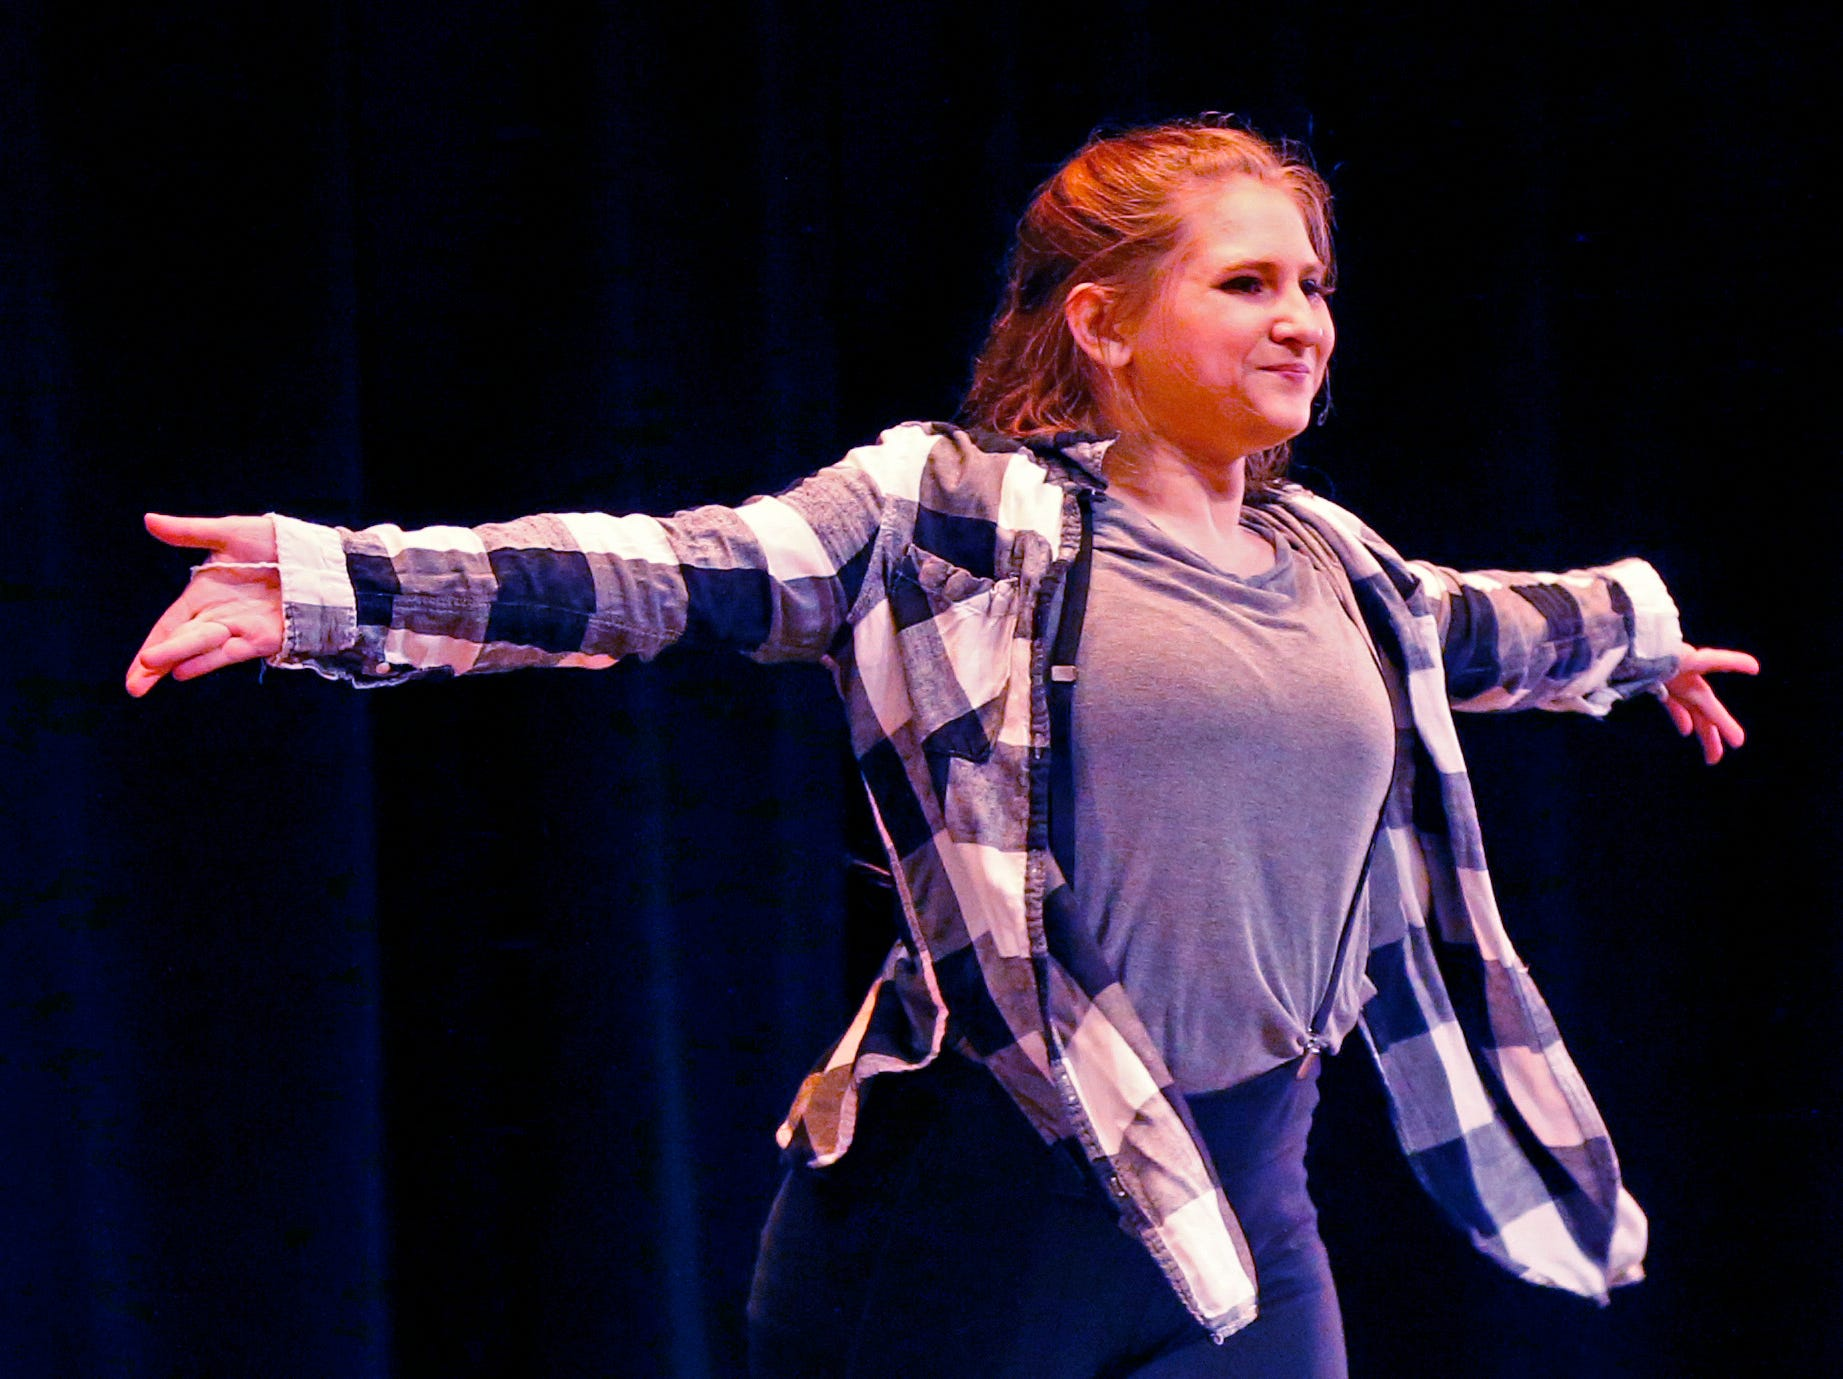 Taylor Bulanek performs a dance number during the 2018 Rocket Review to benefit the South Milwaukee High School Theatre Company at the Performing Arts Center on Dec. 20.